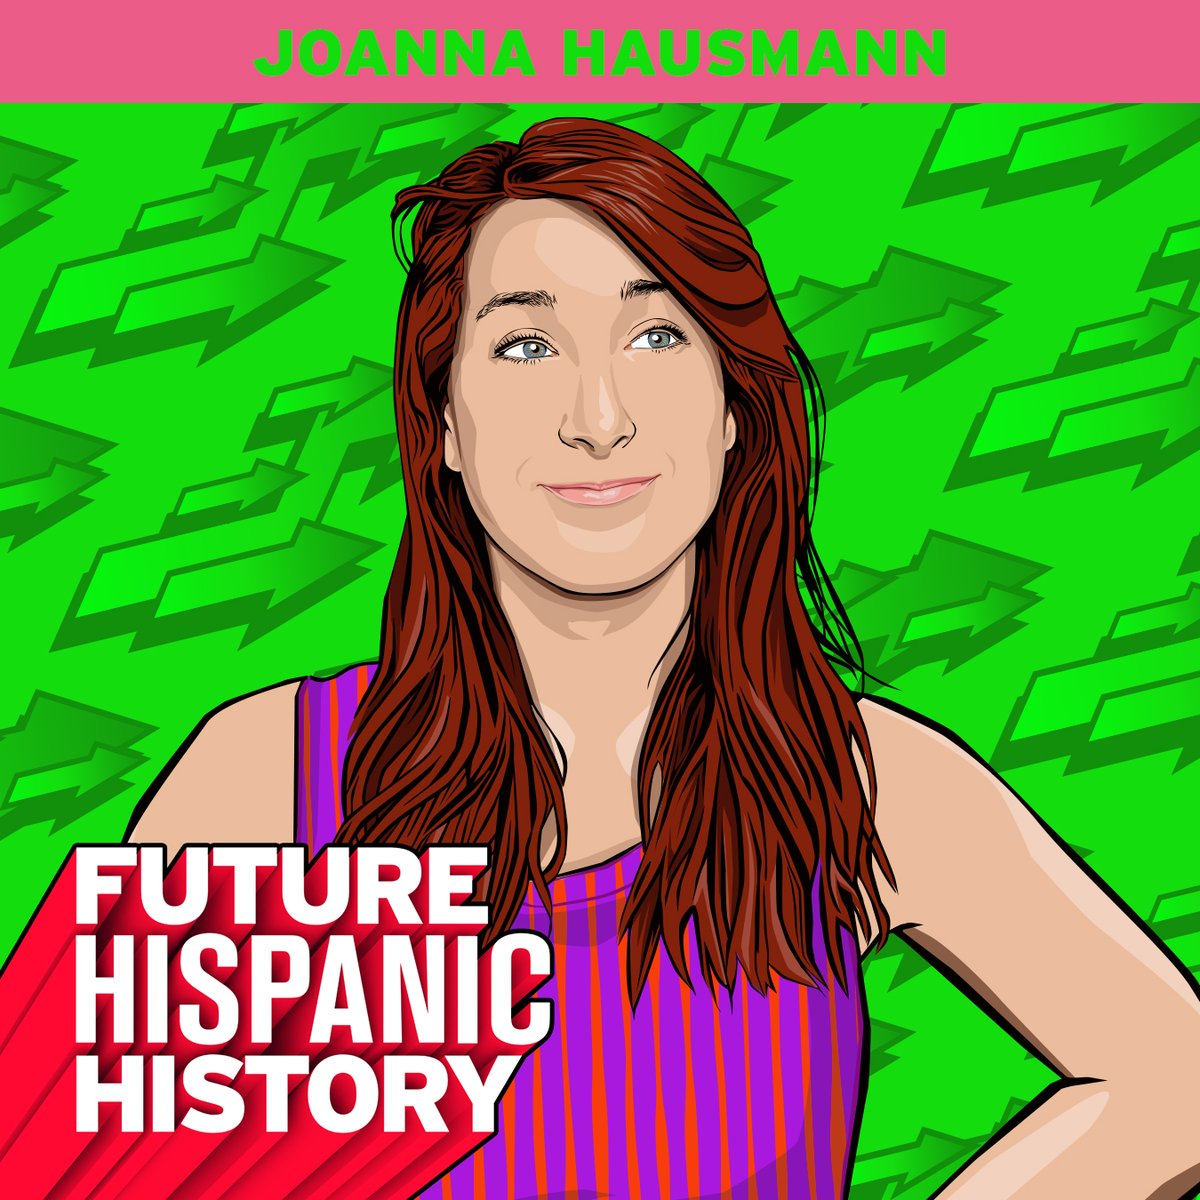 Shoutout to our #FutureHispanicHistory honoree @Joannahausmann! ✨